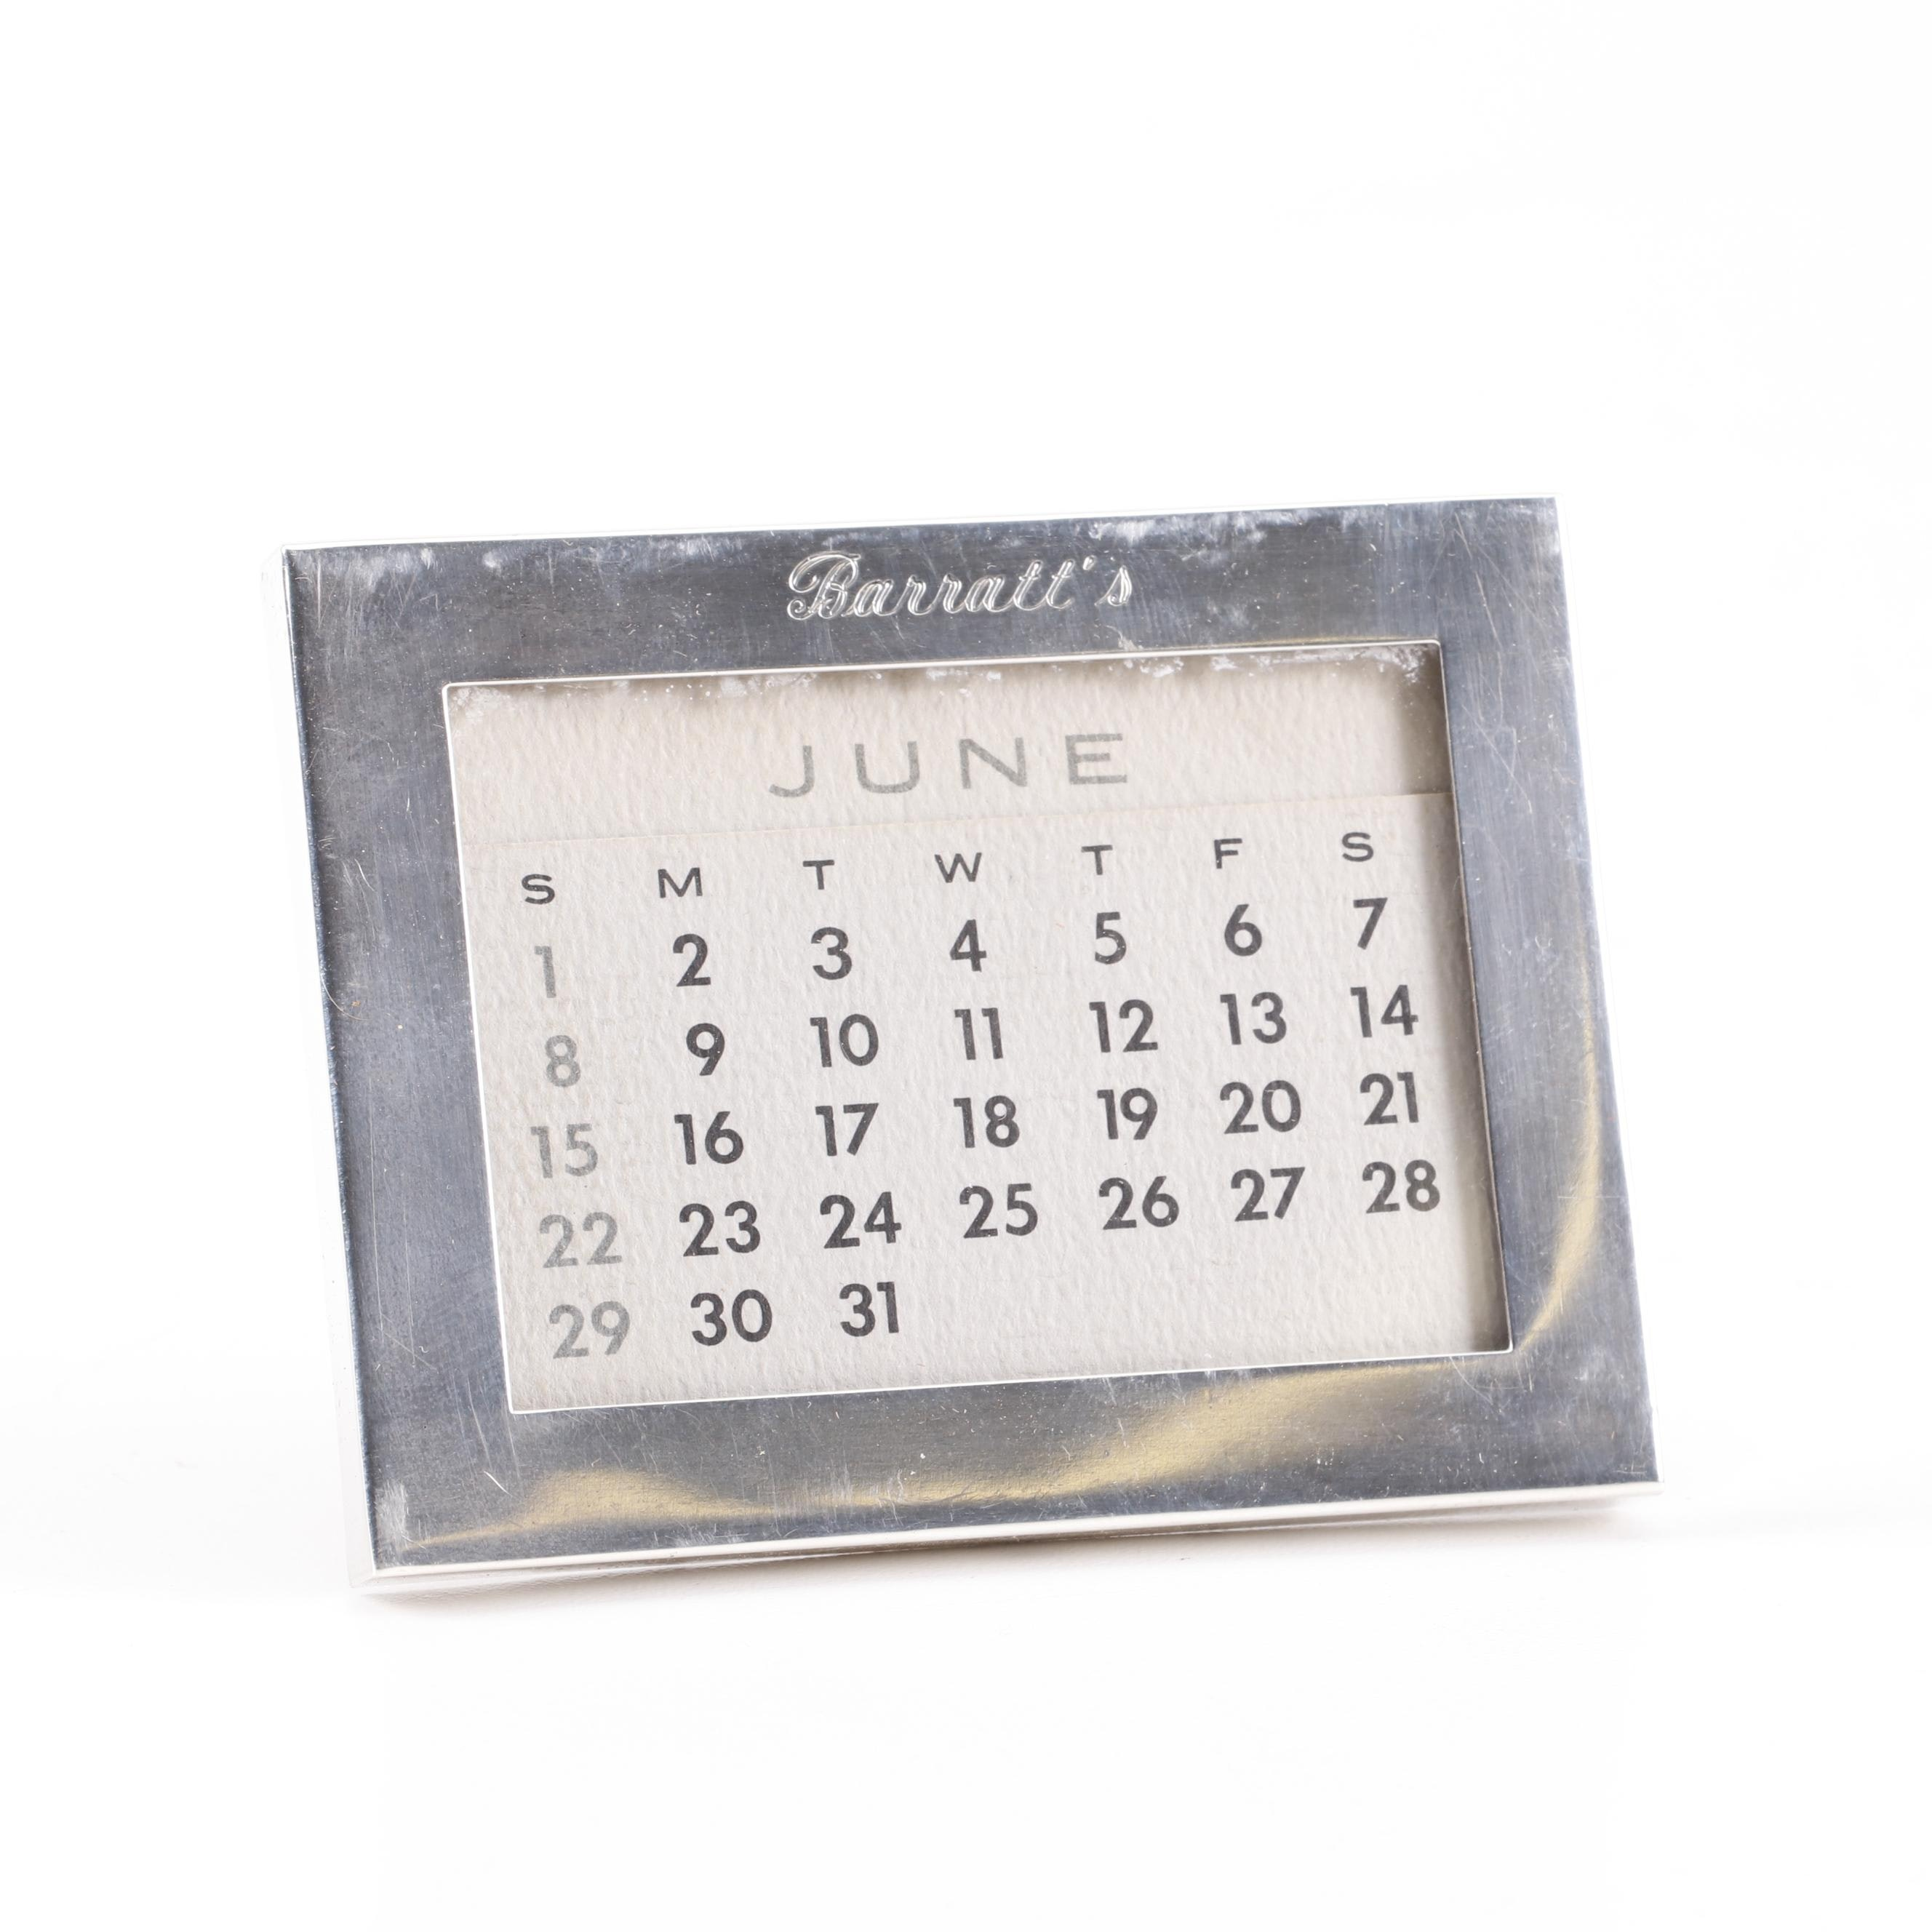 Tiffany & Co. Sterling Silver Frame with Calendar Insert